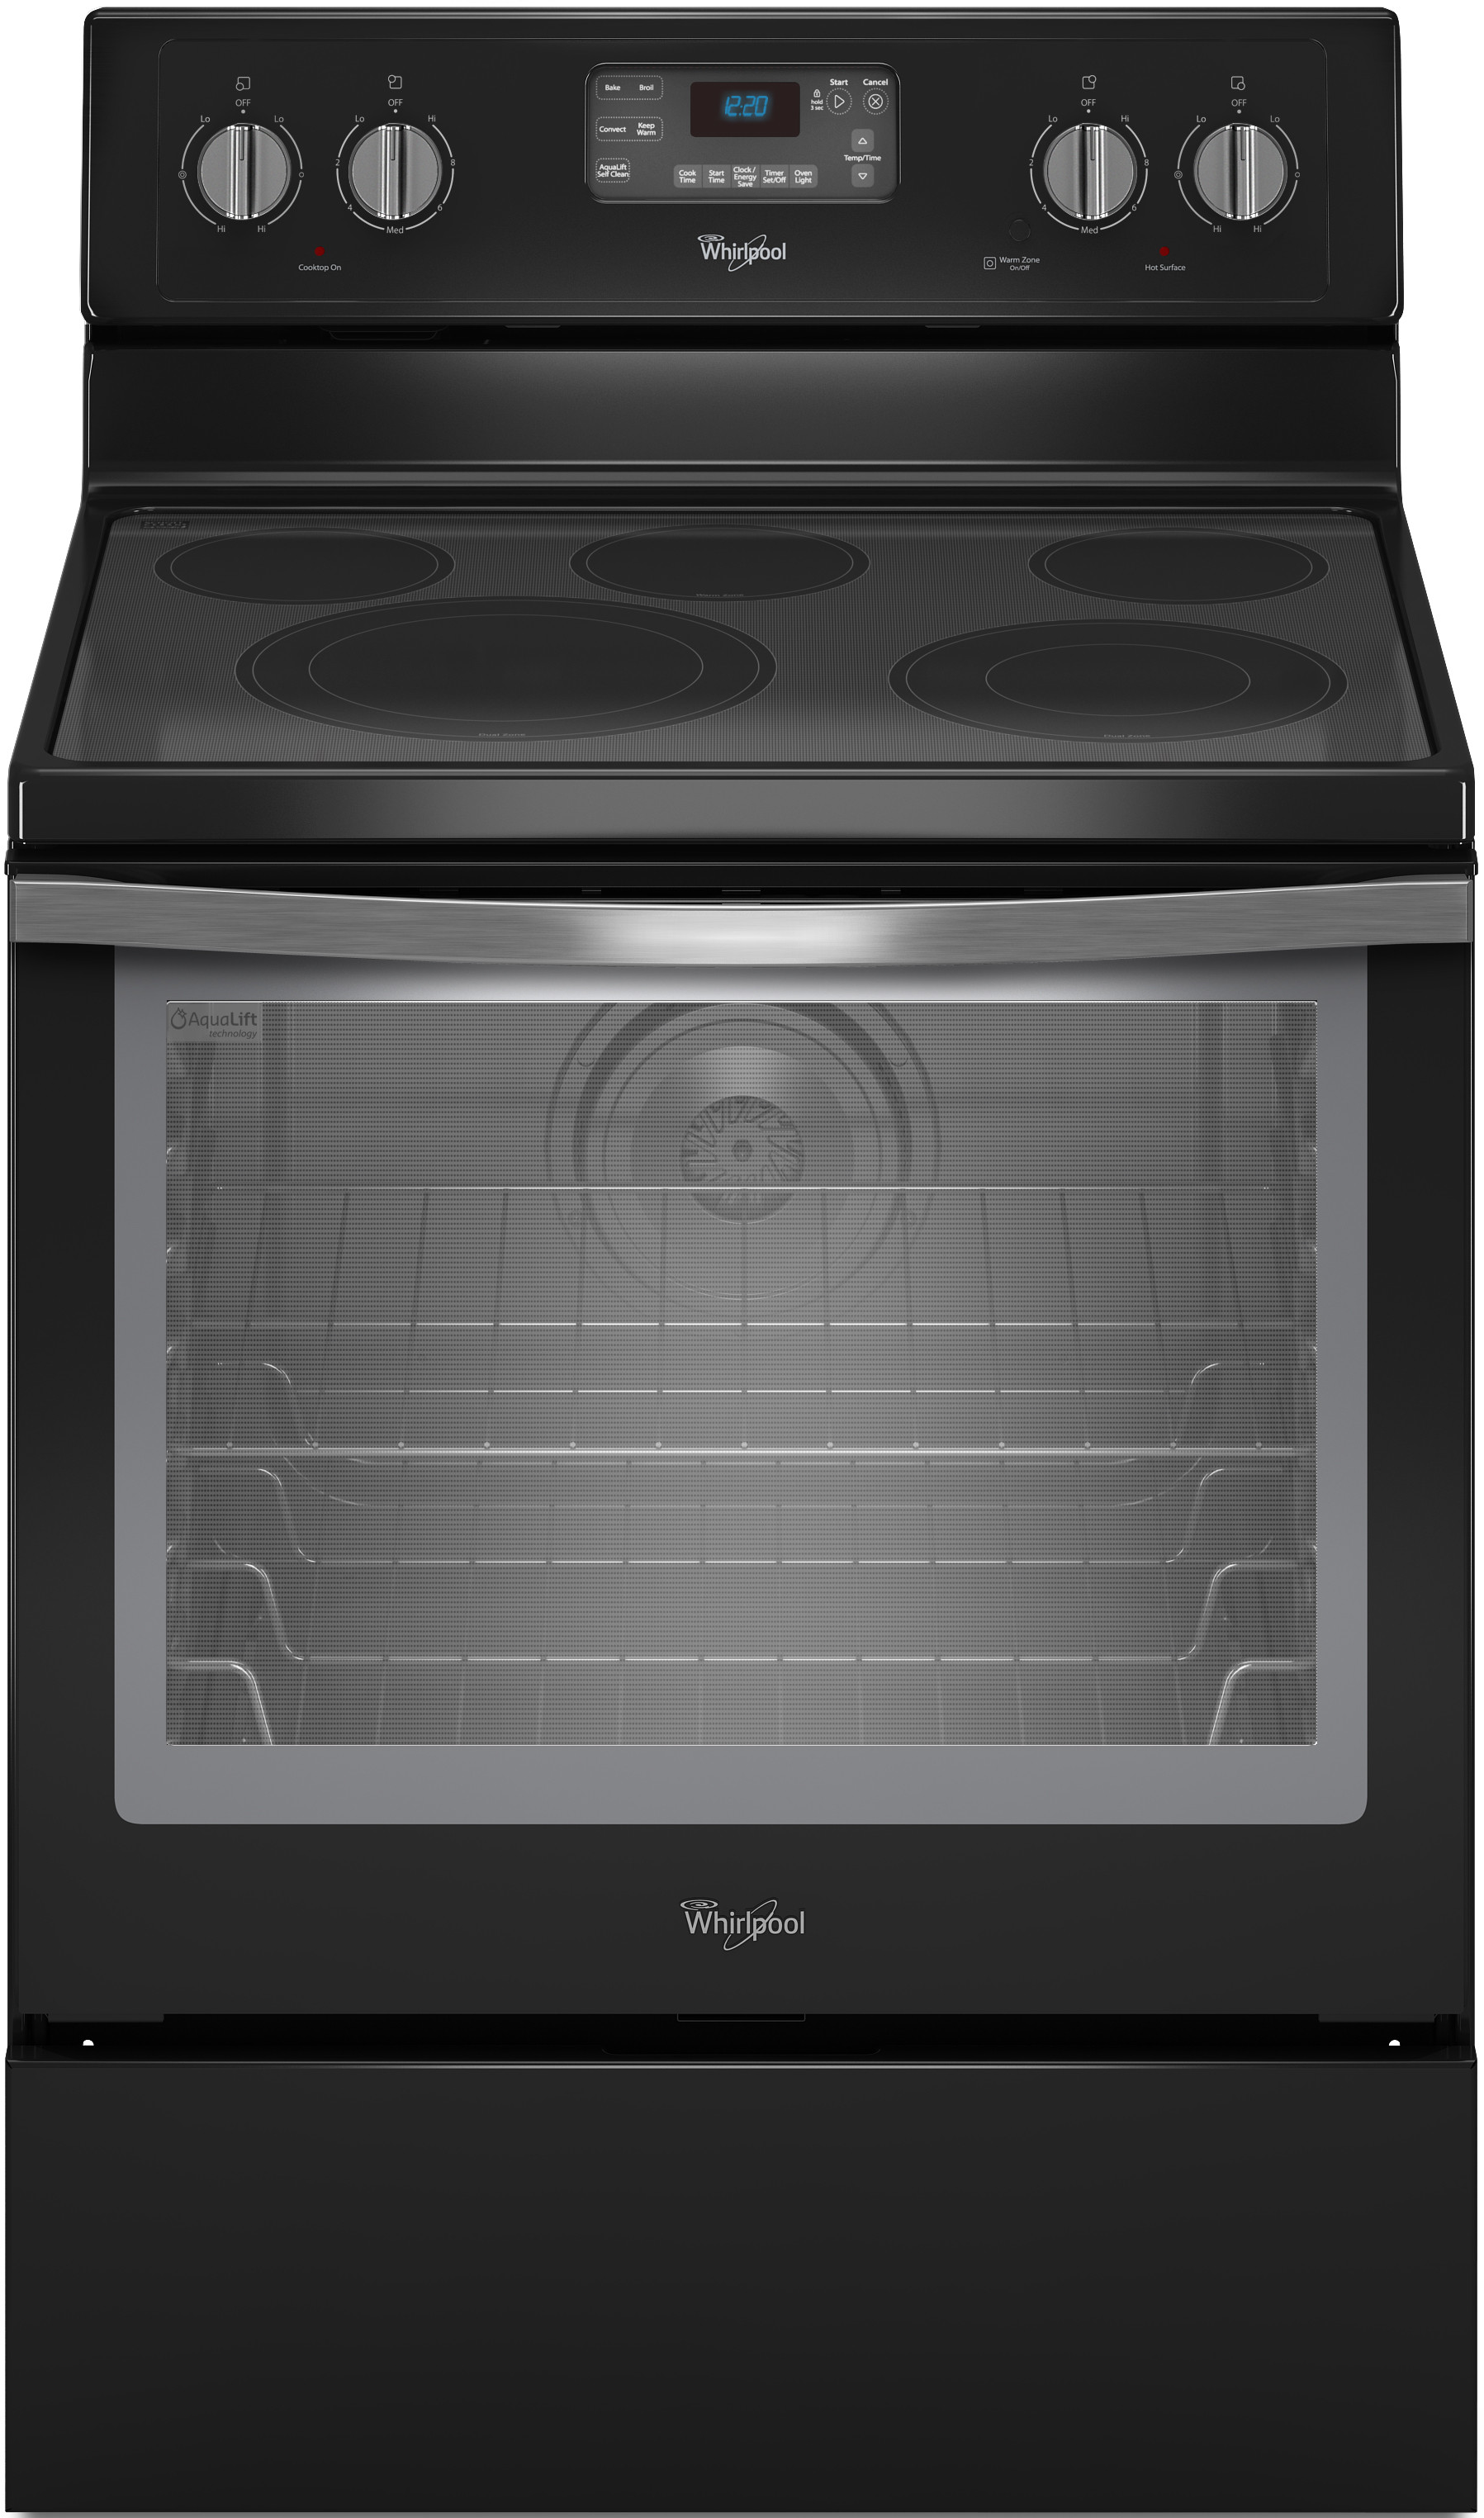 hight resolution of whirlpool wfe540h0ee 30 inch freestanding electric range with convection accubake flexheat aqualift 5 smoothtop elements 6 4 cu ft